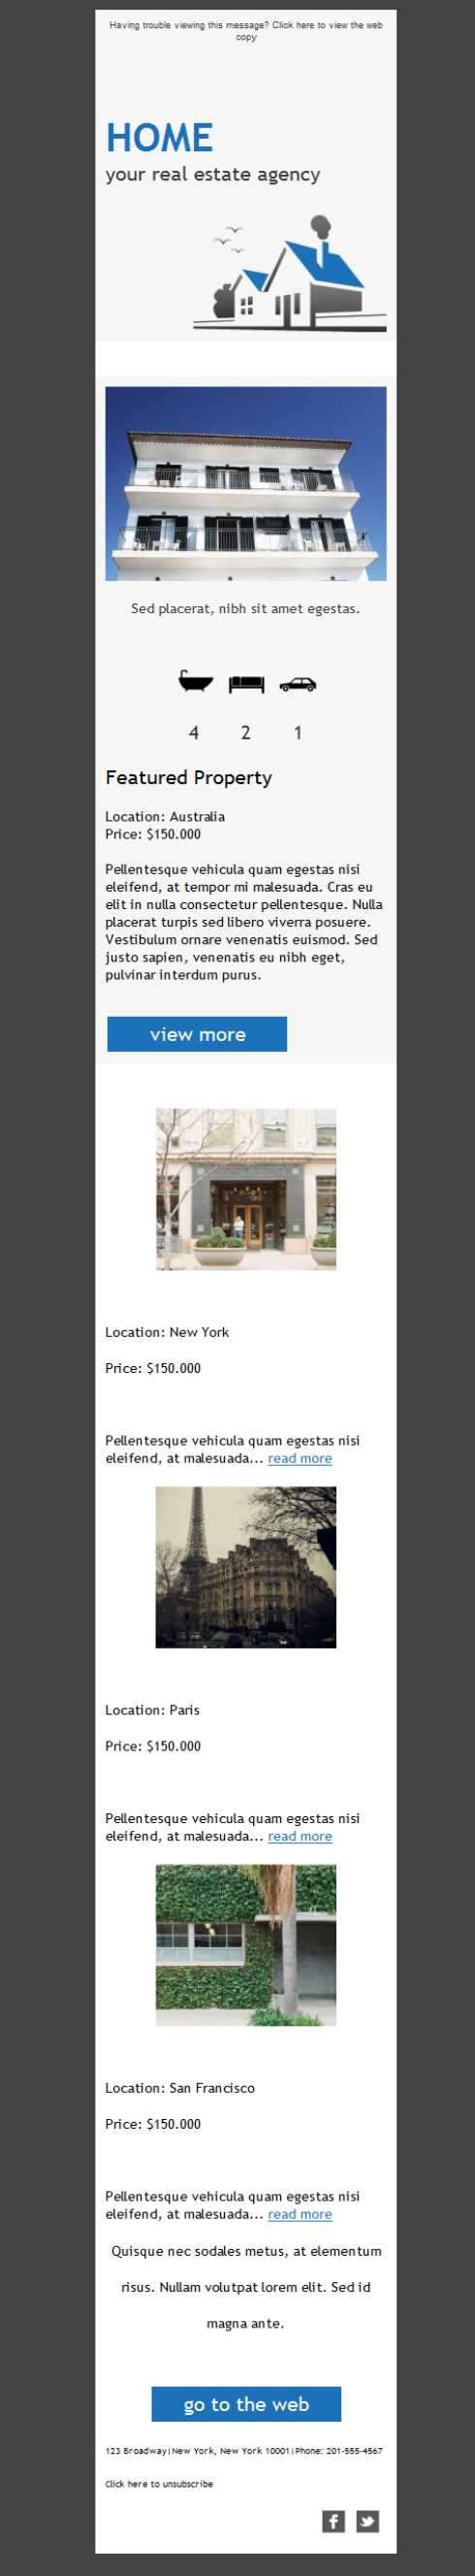 Free Email Templates Download Design Real Estate Agency